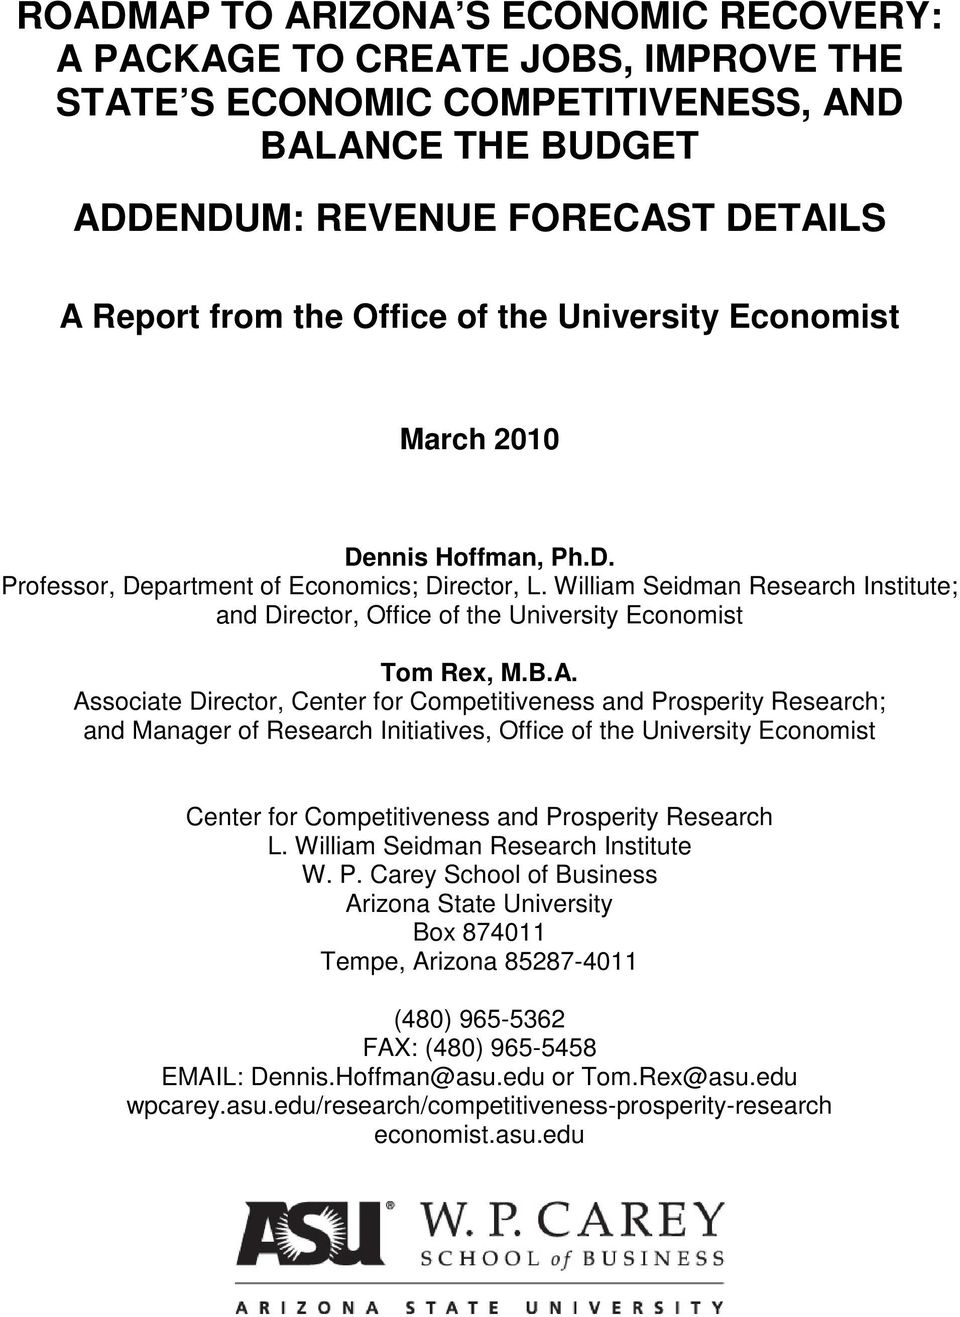 William Seidman Research Institute; and Director, Office of the University Economist Tom Rex, M.B.A.